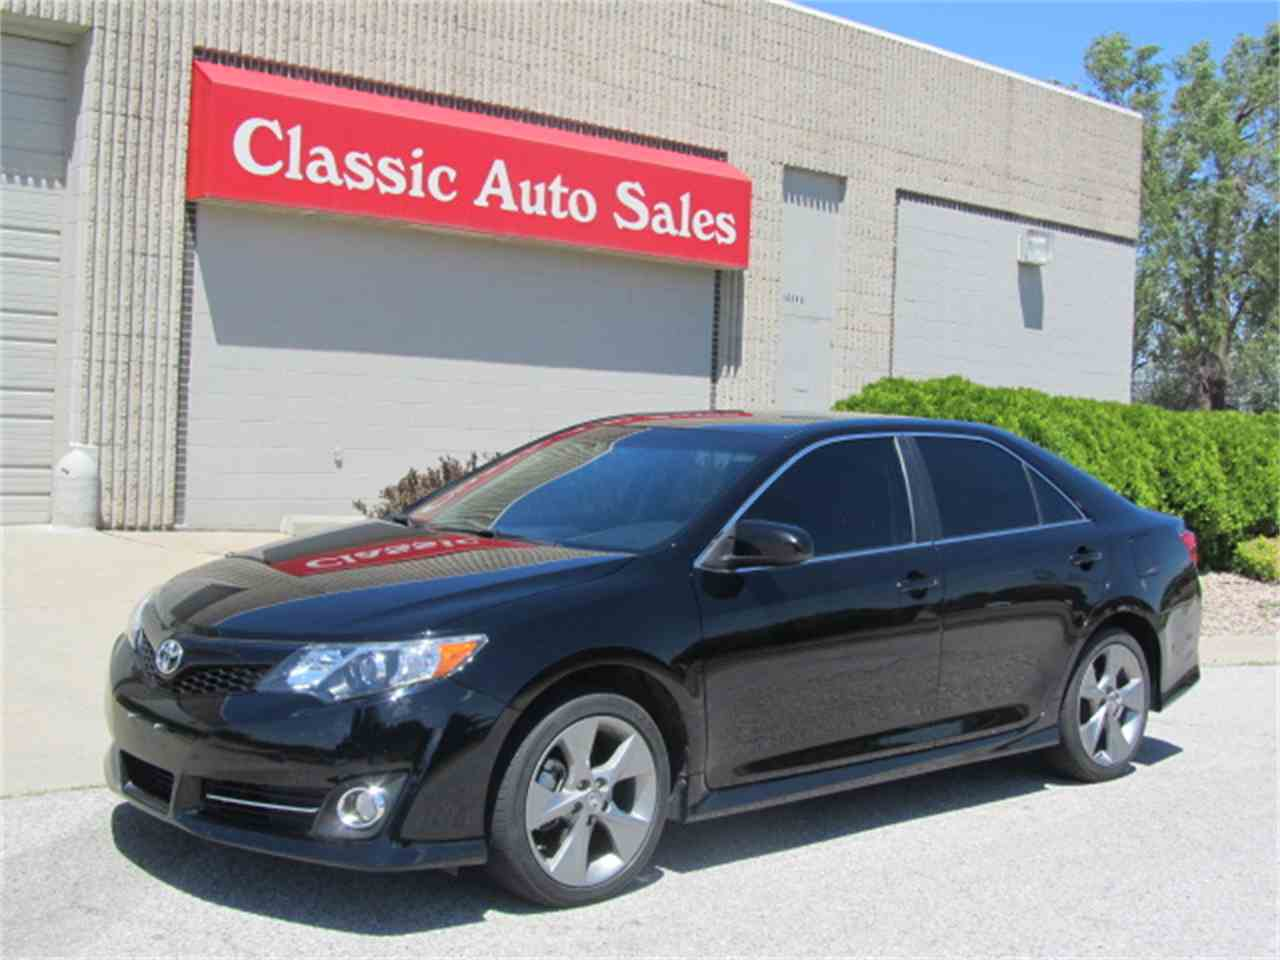 2012 Toyota Camry for Sale ClassicCars